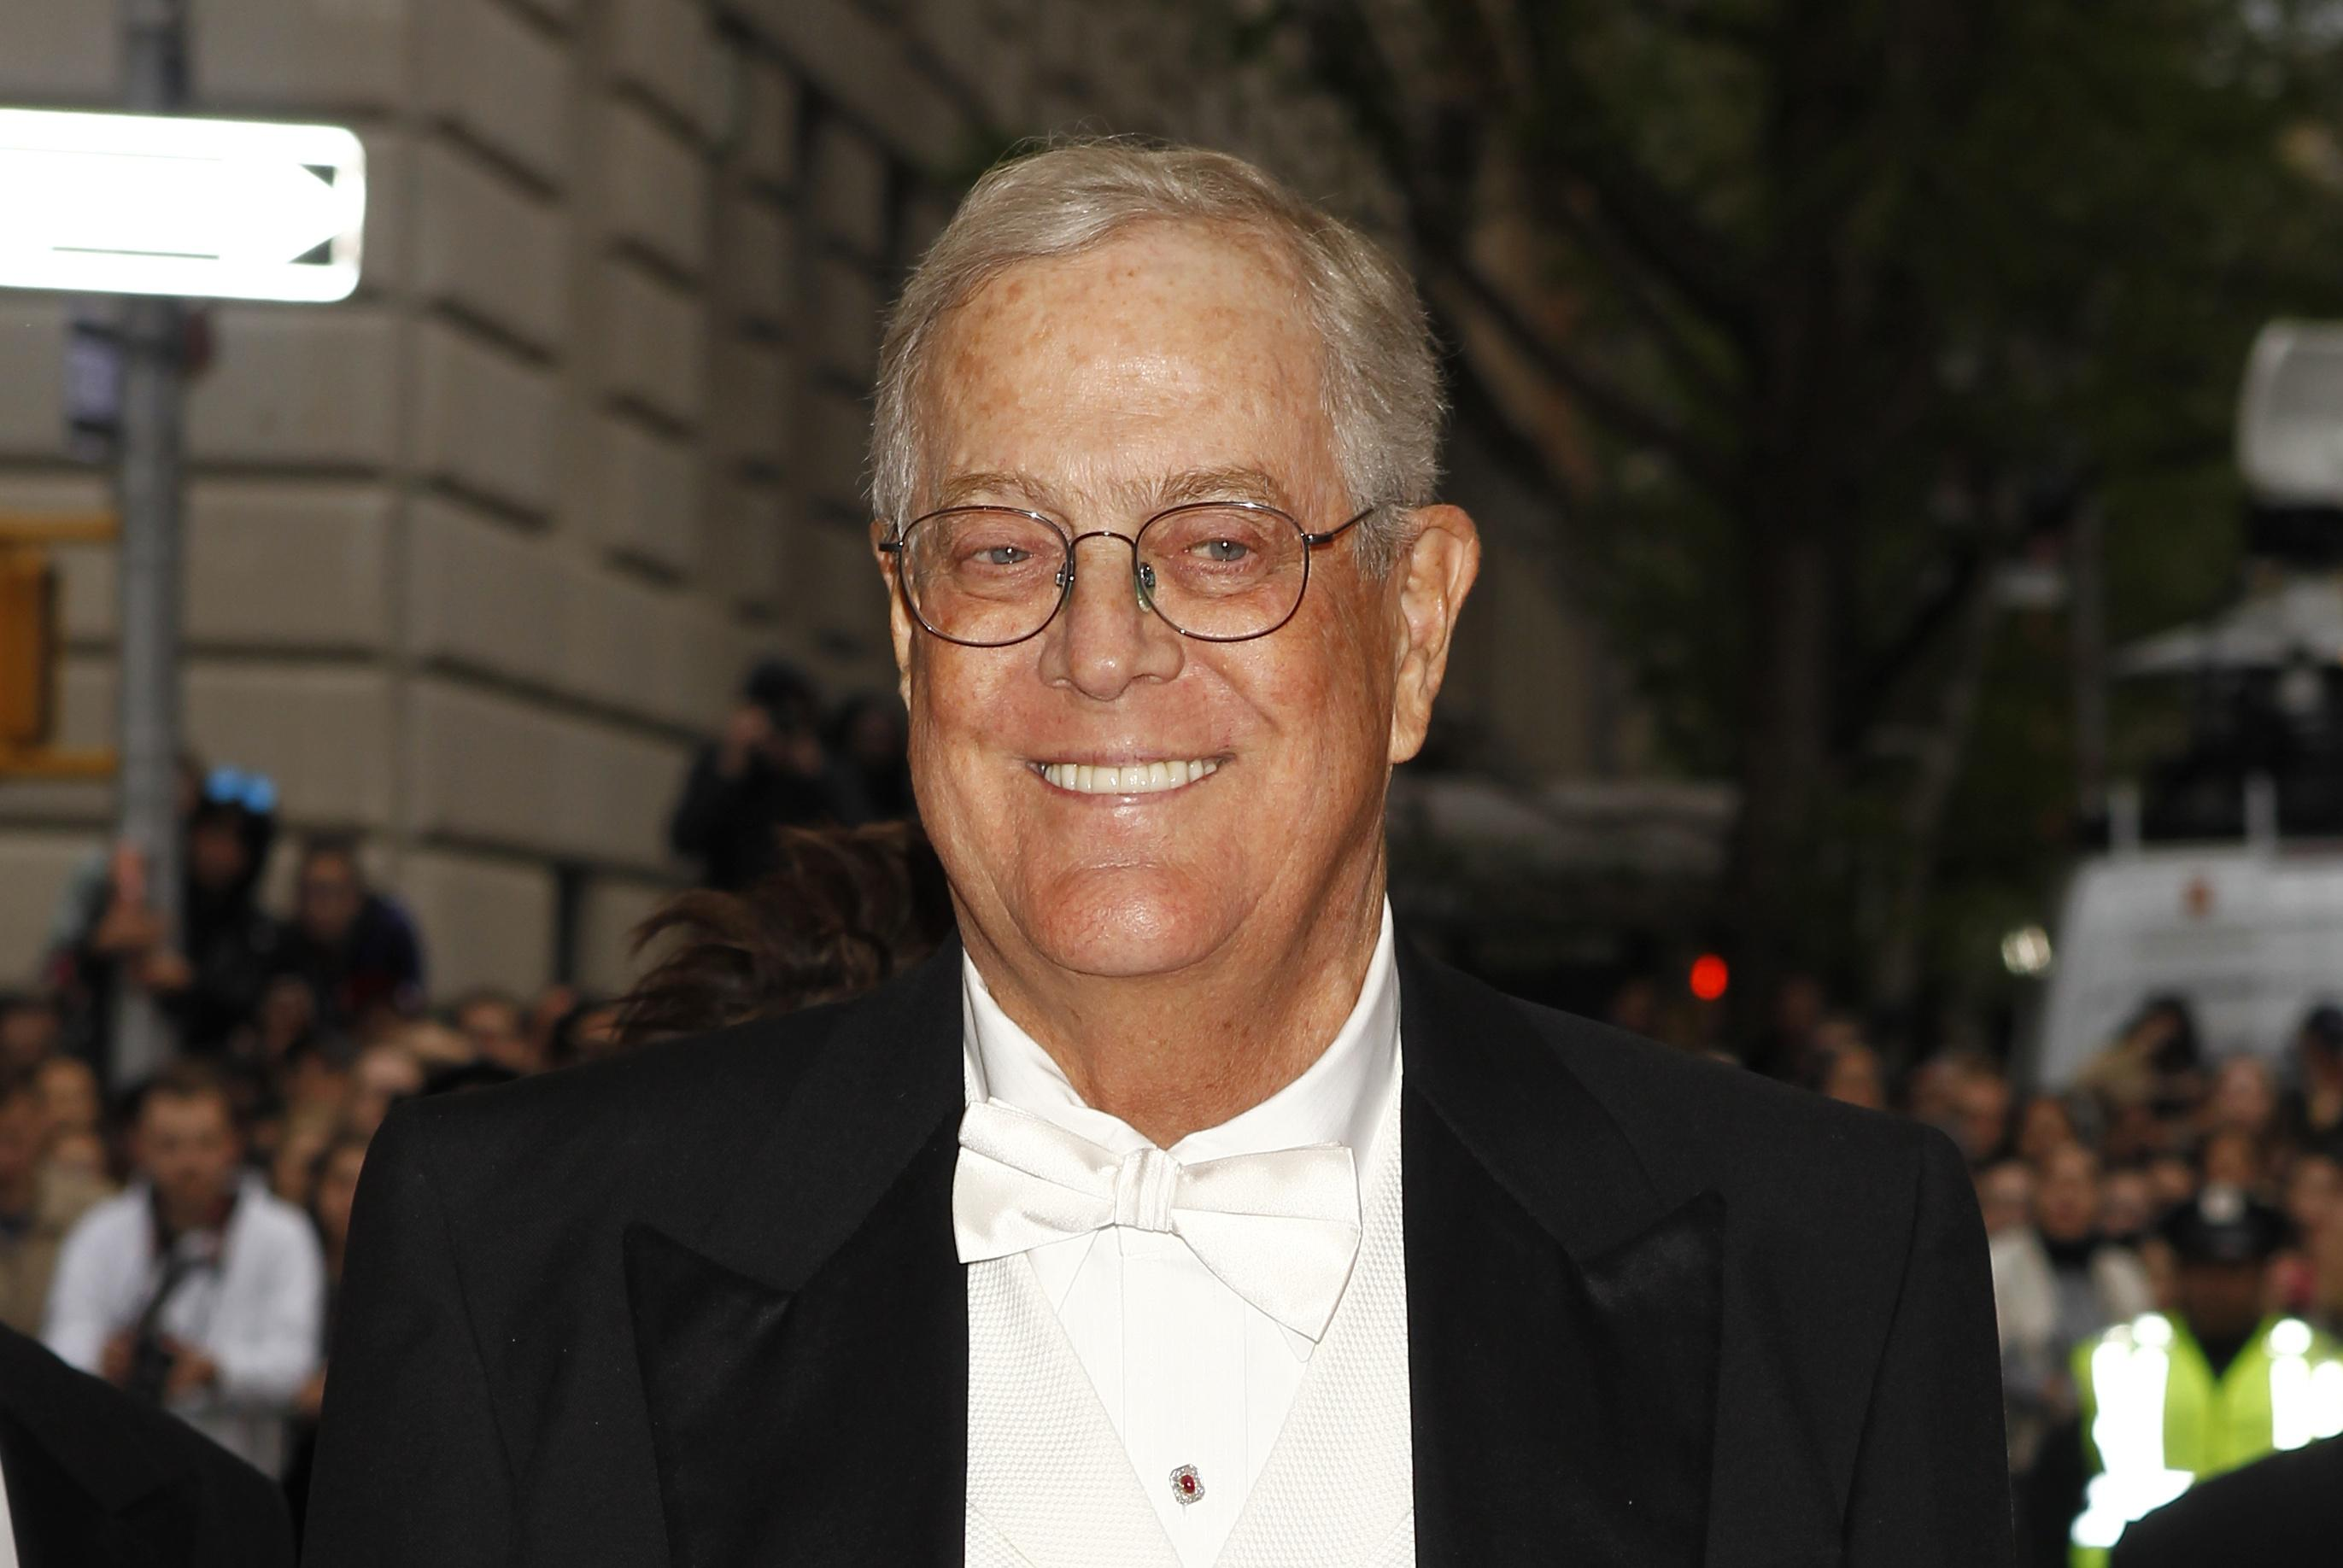 David Koch to retire from Koch Industries due to poor health: memo